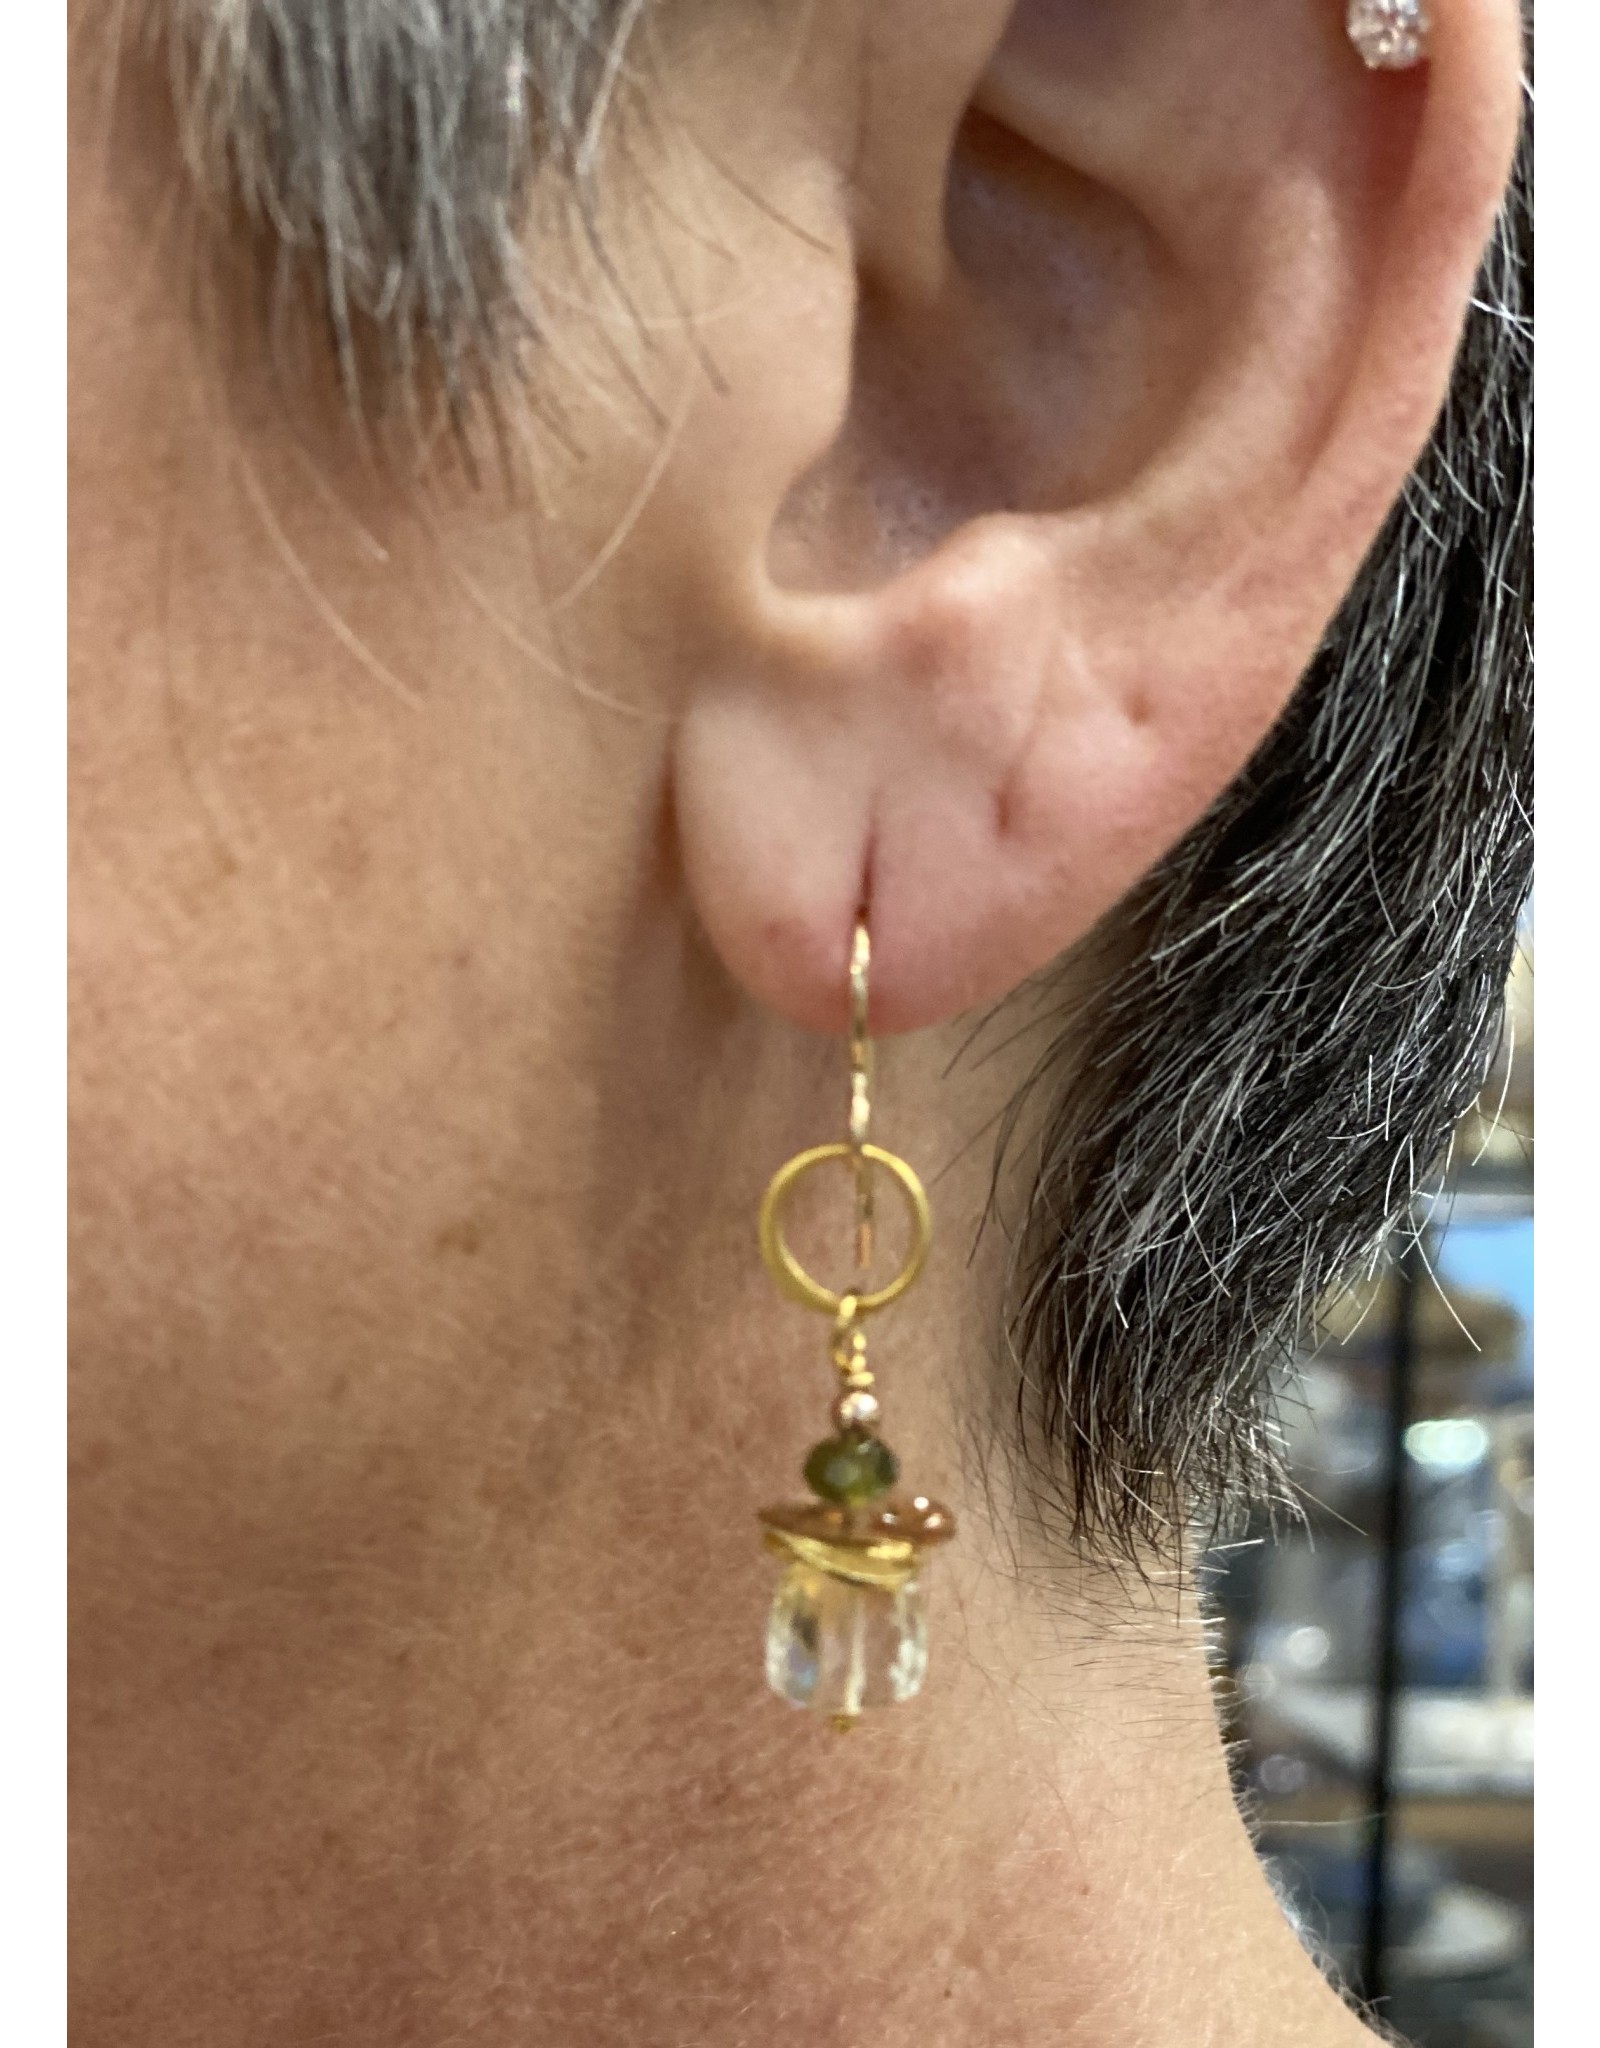 Moondance Alaska by Colleen Goldrich Moondance Earrings Citrine, Sunstone, Green Garnet, 14k gold-fill